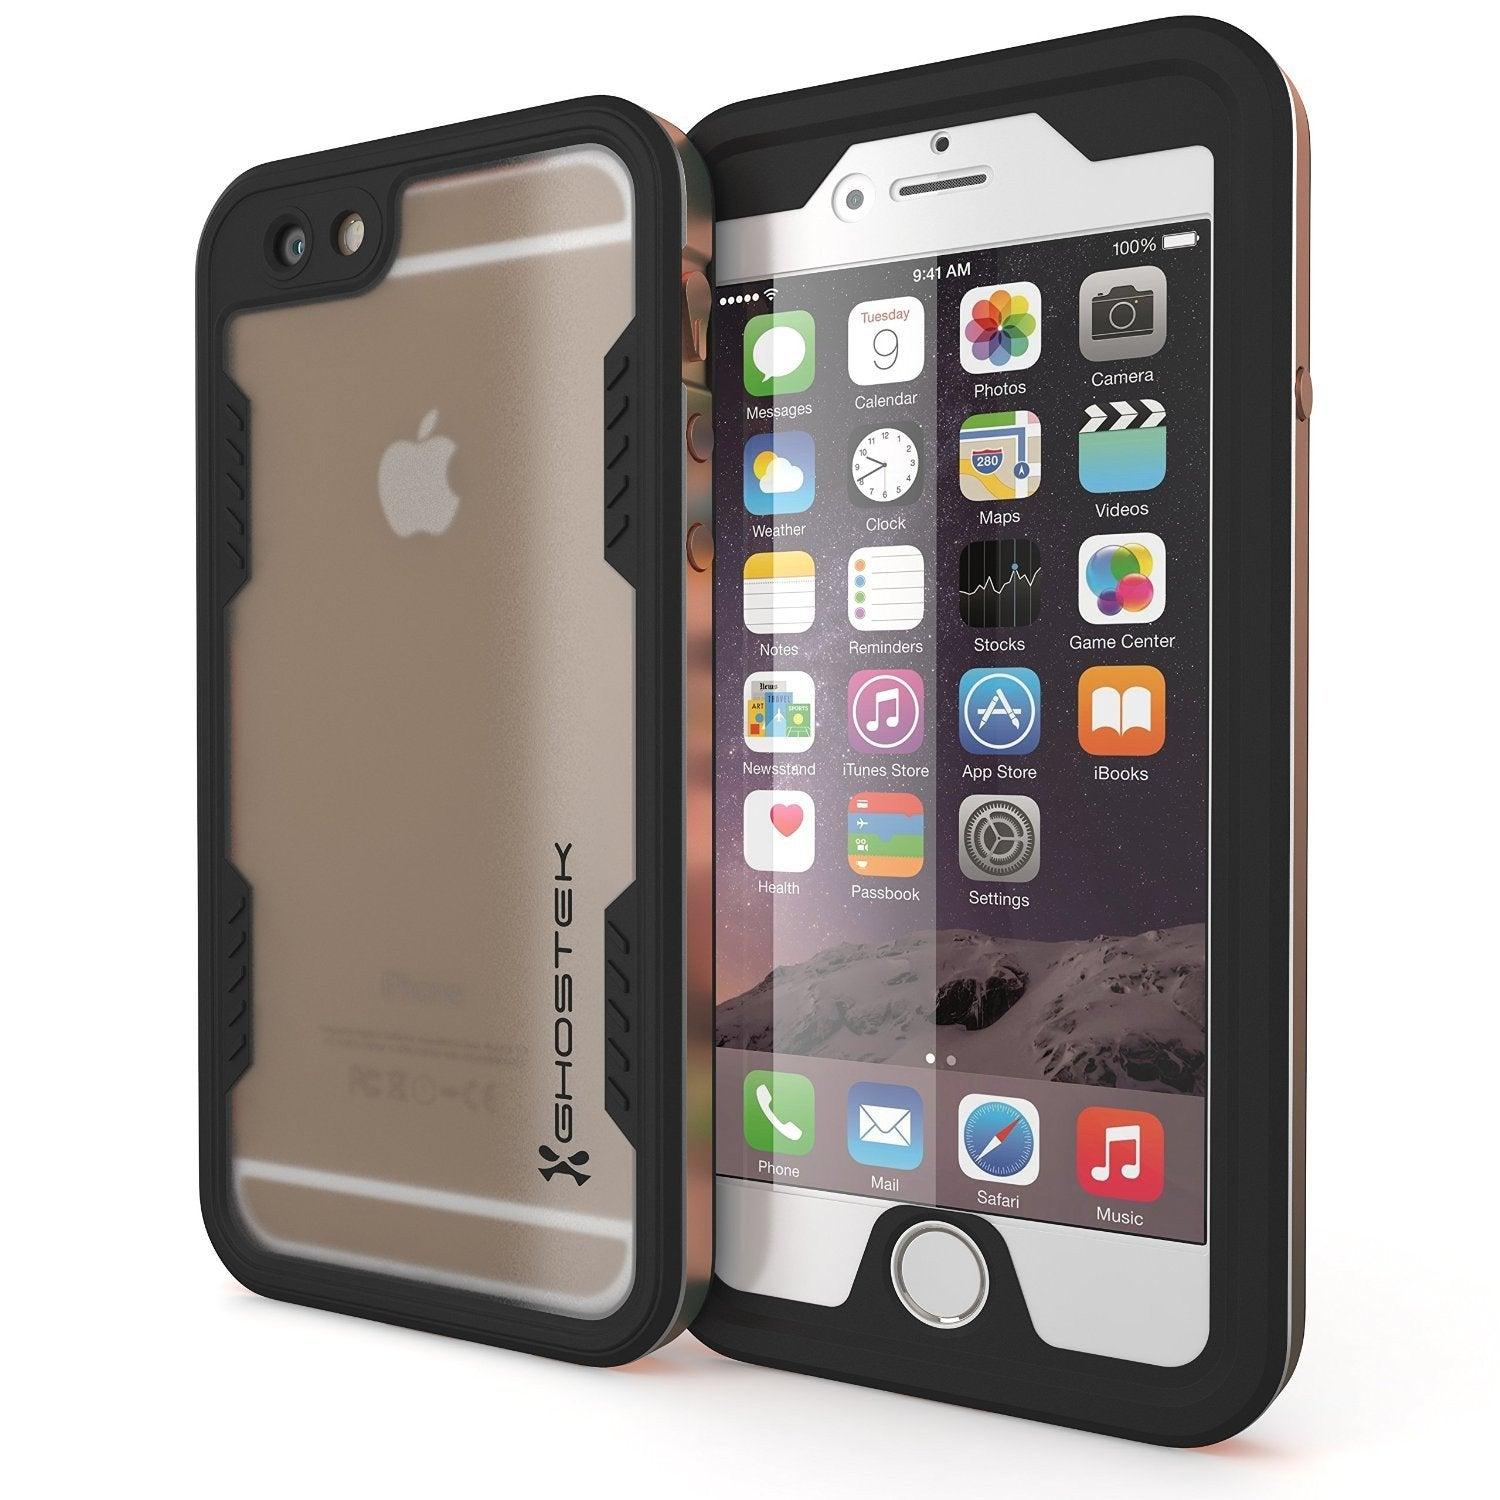 iPhone 6/6S Waterproof Case, Ghostek Atomic 2.0 Gold W/ Attached Screen Protector | Slim Fit